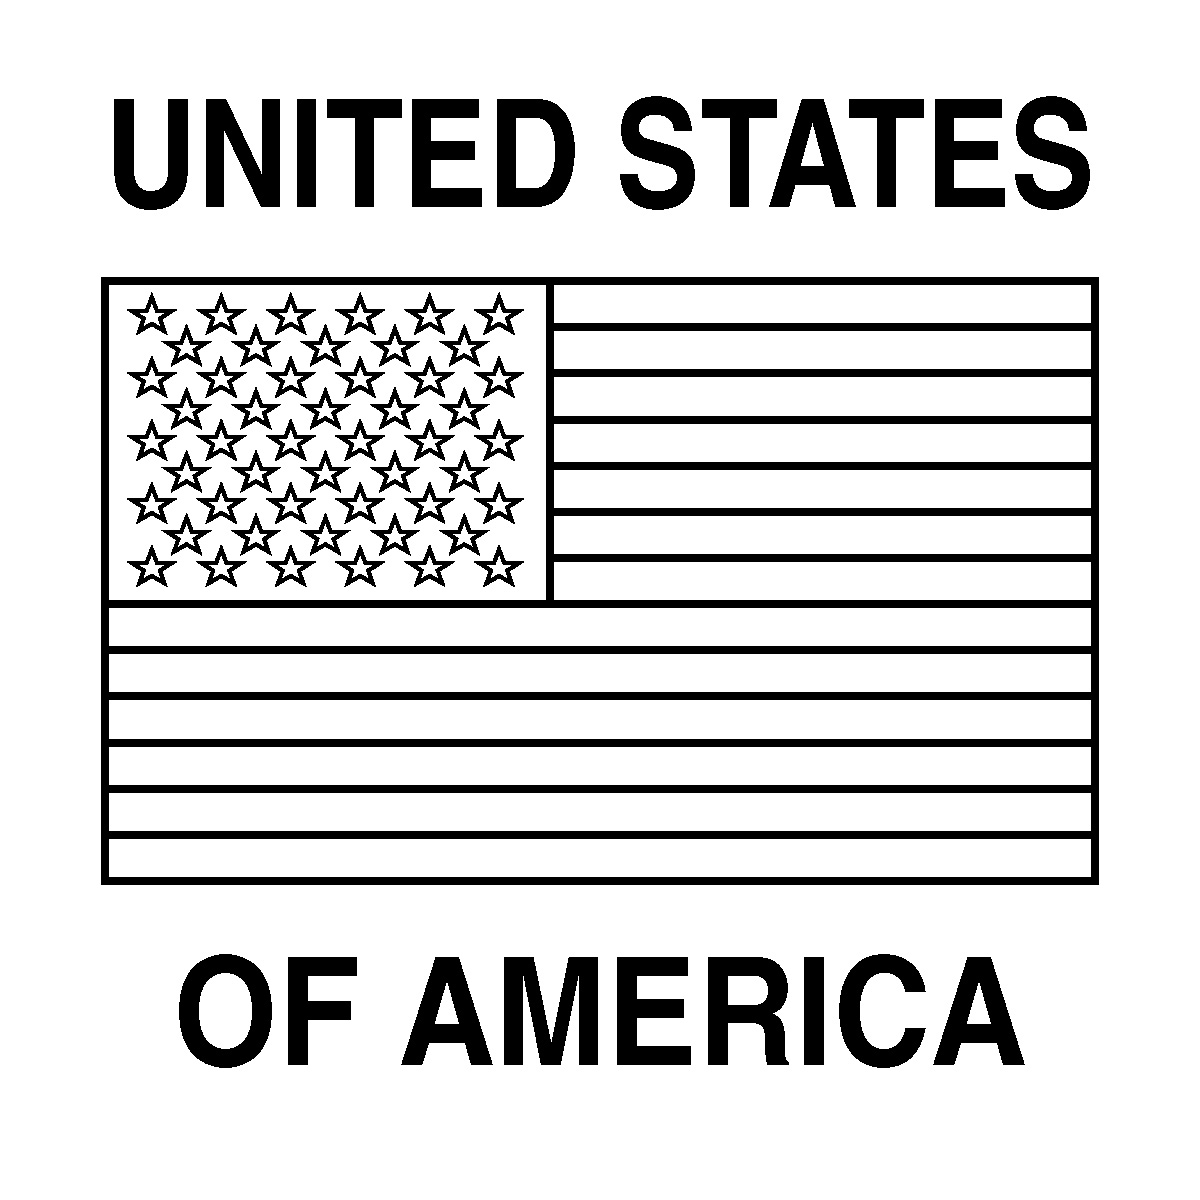 american flag coloring american flag coloring page for the love of the country american flag coloring